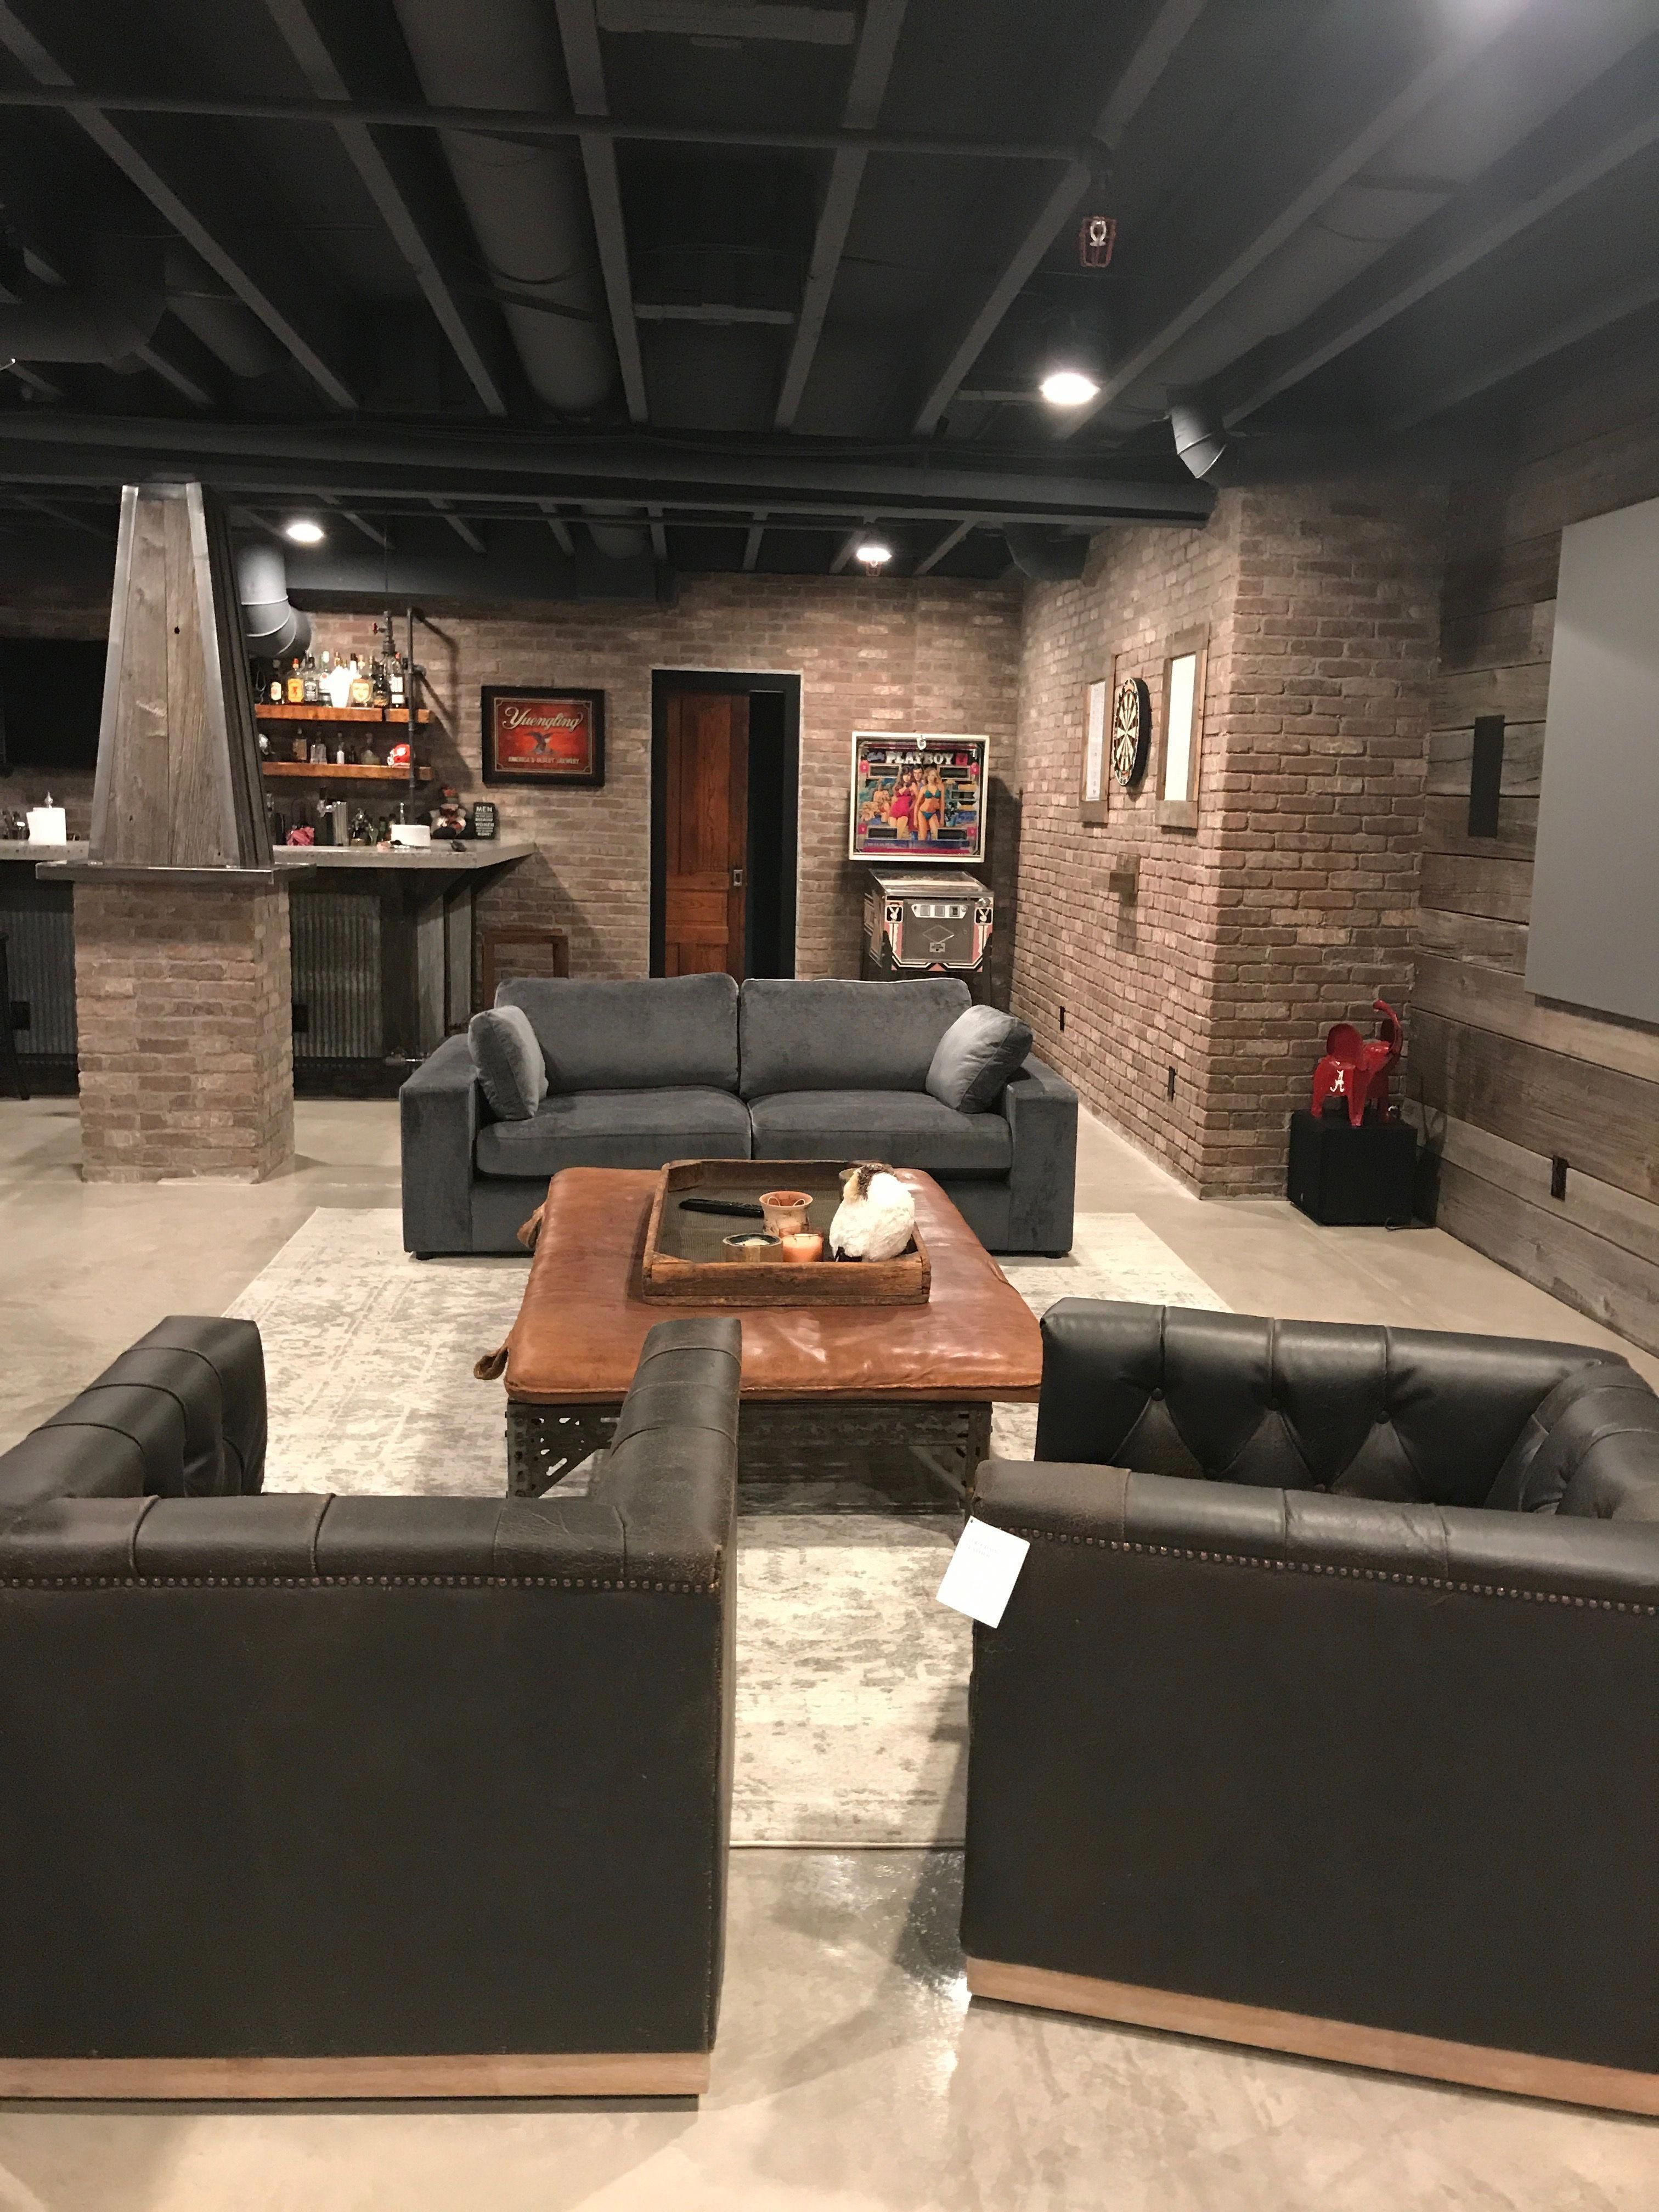 Finish My Basement 7 Great Basement Design Ideas Affordable Basement Remodeling Ideas 20181222 Cozy Basement Basement Inspiration Basement Design